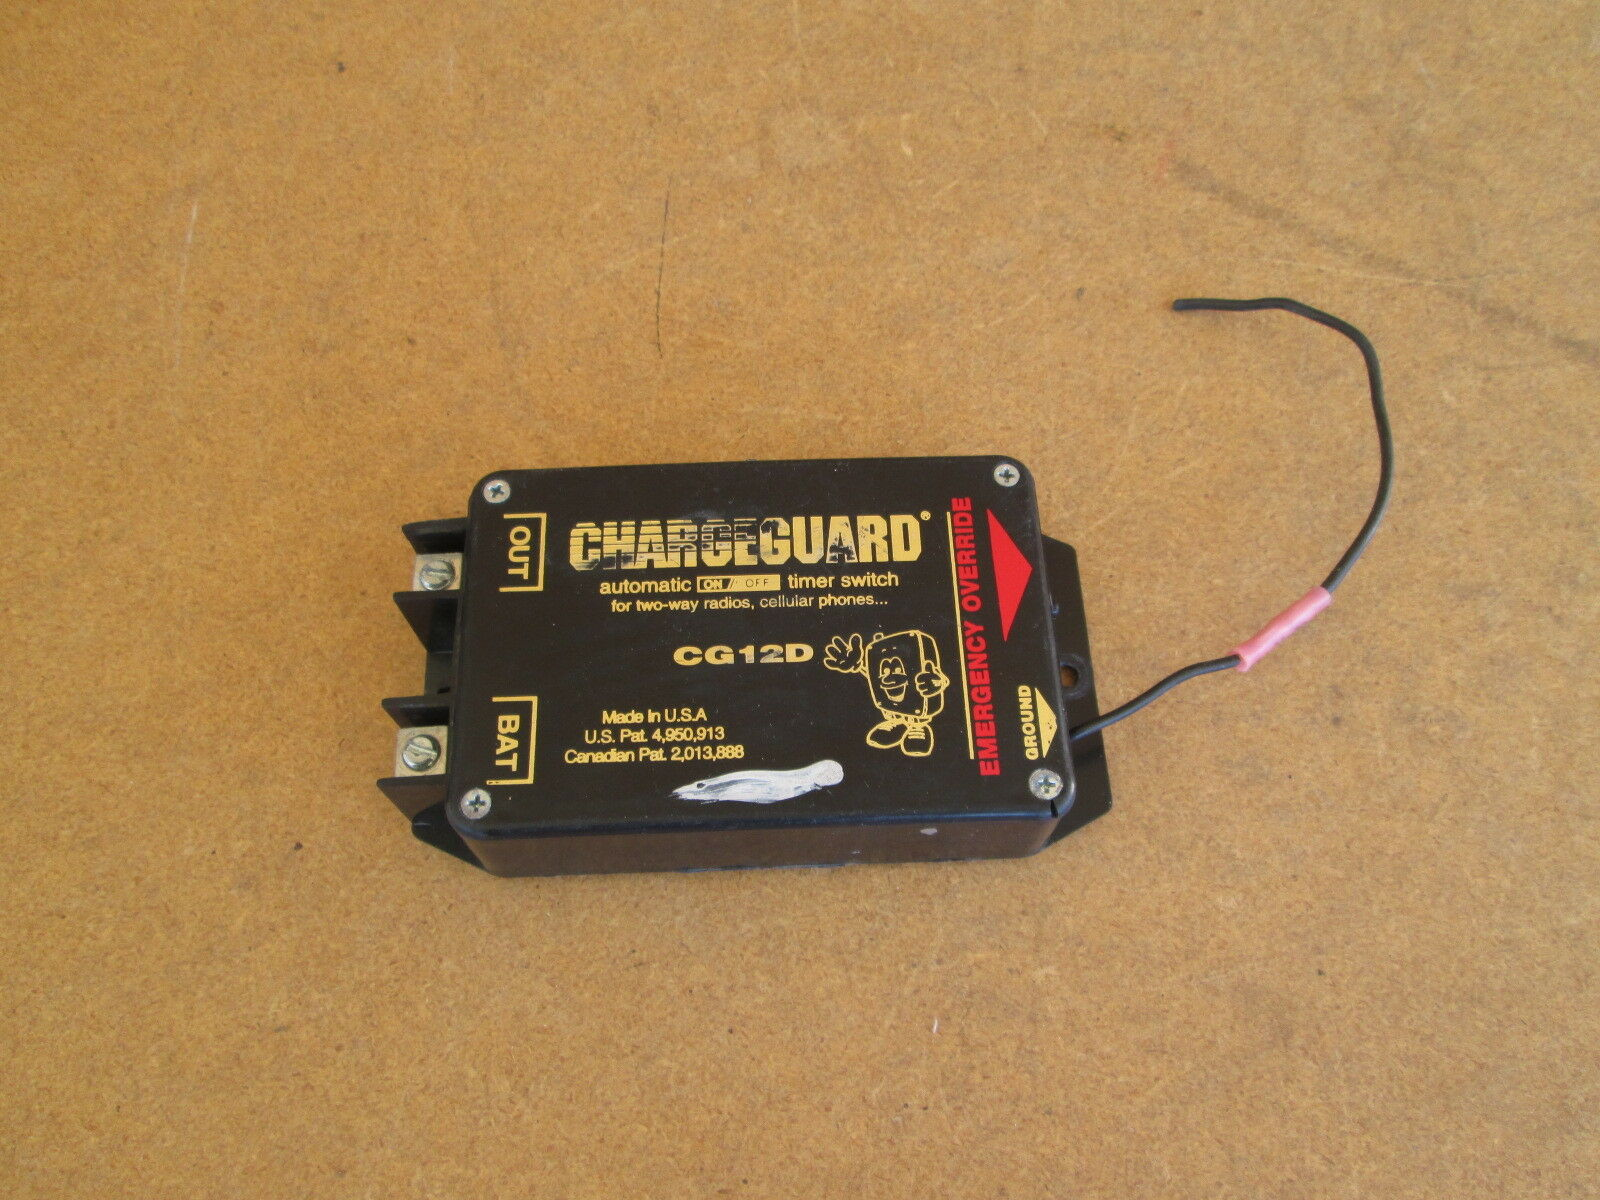 Chargeguard Cg12d Automatic Timer Switch Police Vehicle Battery 2 Way 1 Of